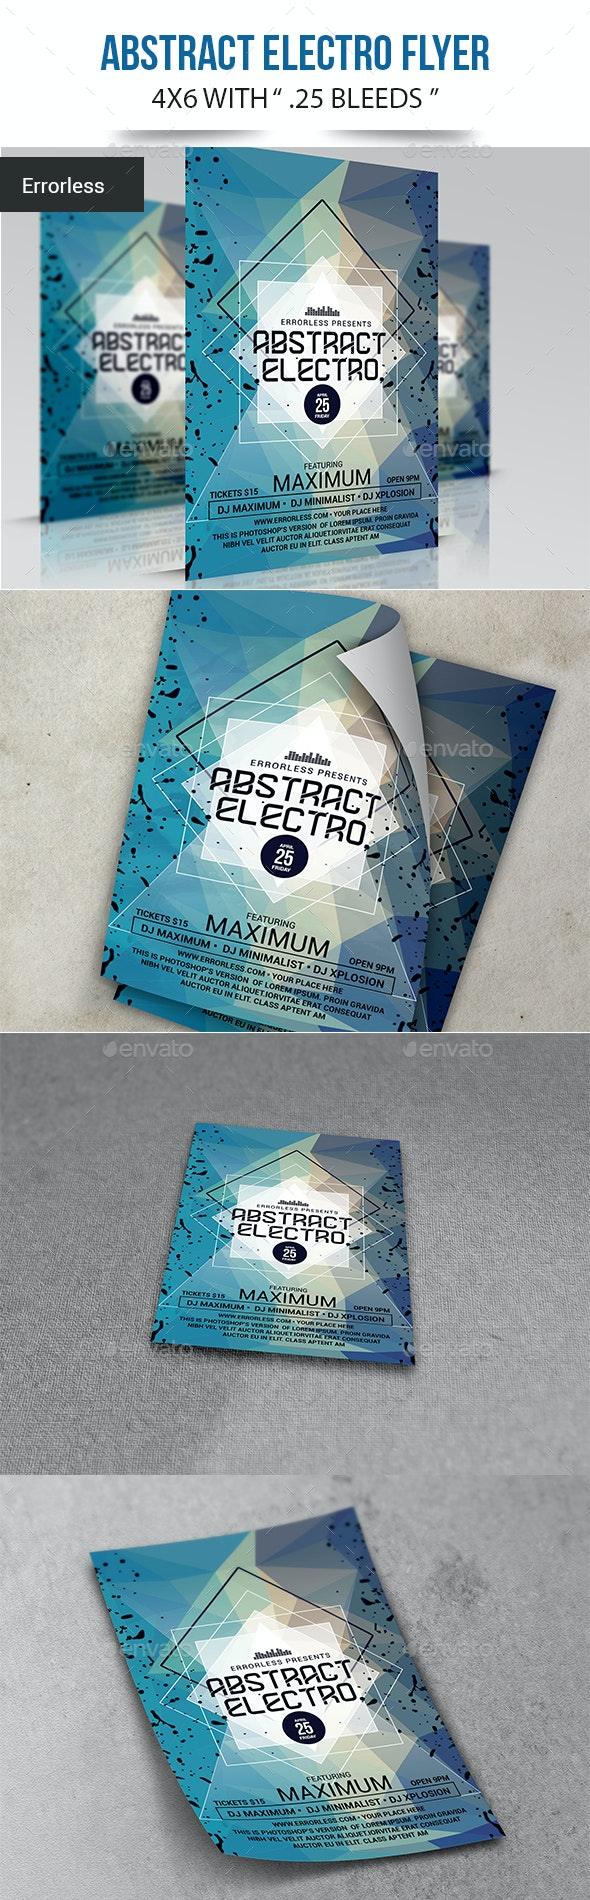 Abstract Electro Flyer - Clubs & Parties Events